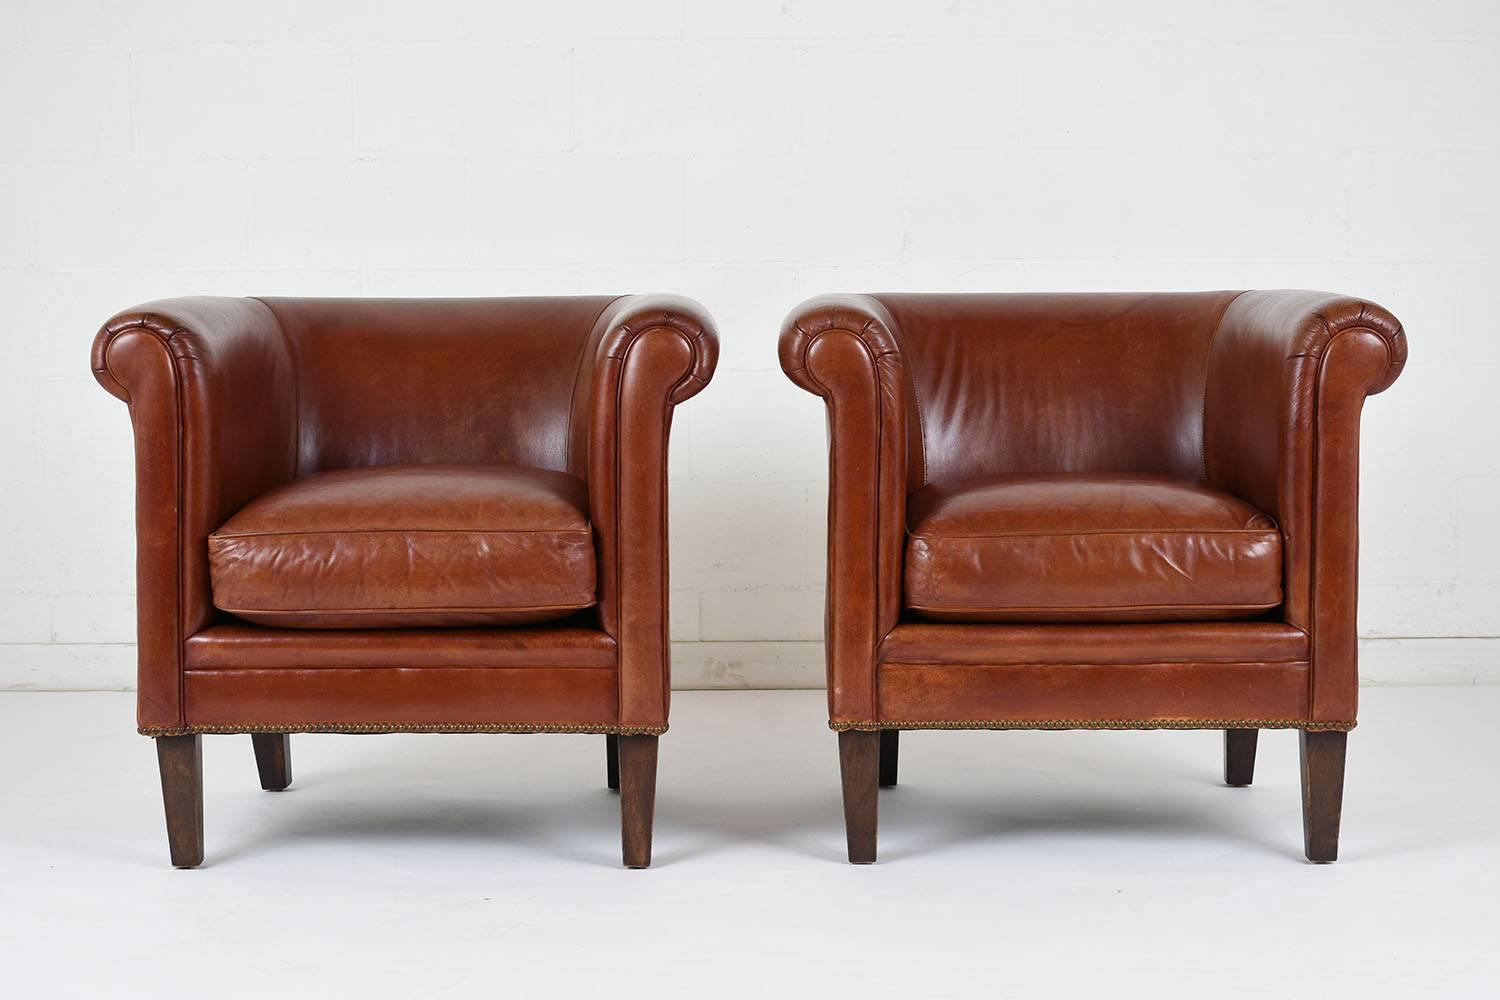 bernhardt brown leather club chair electric pictures pair of regency style chairs for sale at 1stdibs american